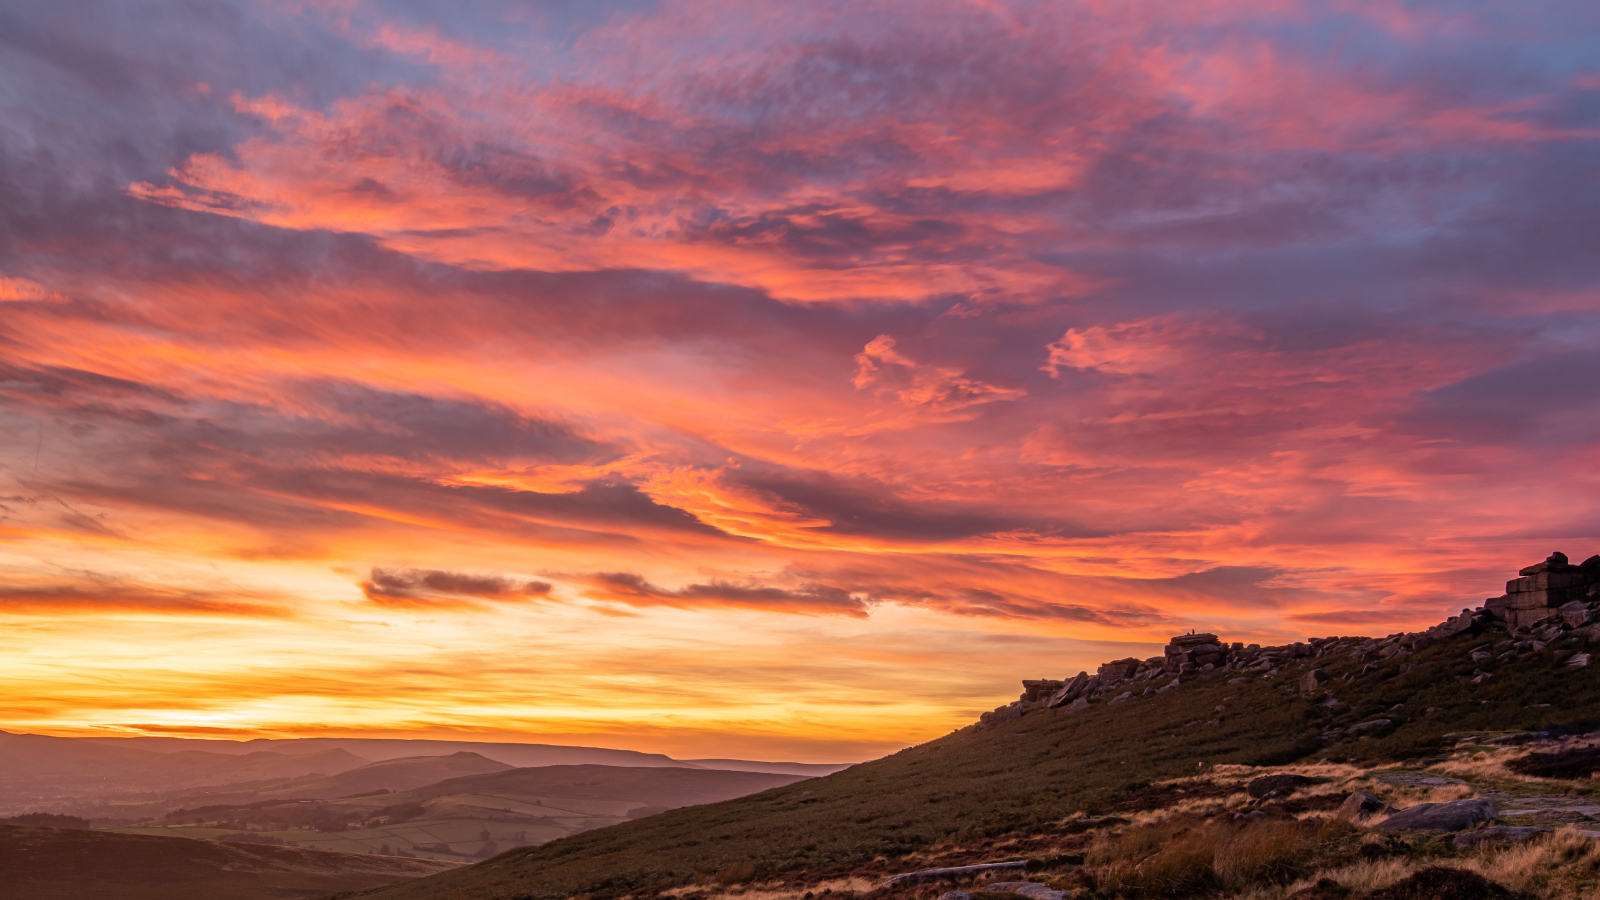 Sunset taken at Stanage Edge Peak District by David Roberts – Photoscoper